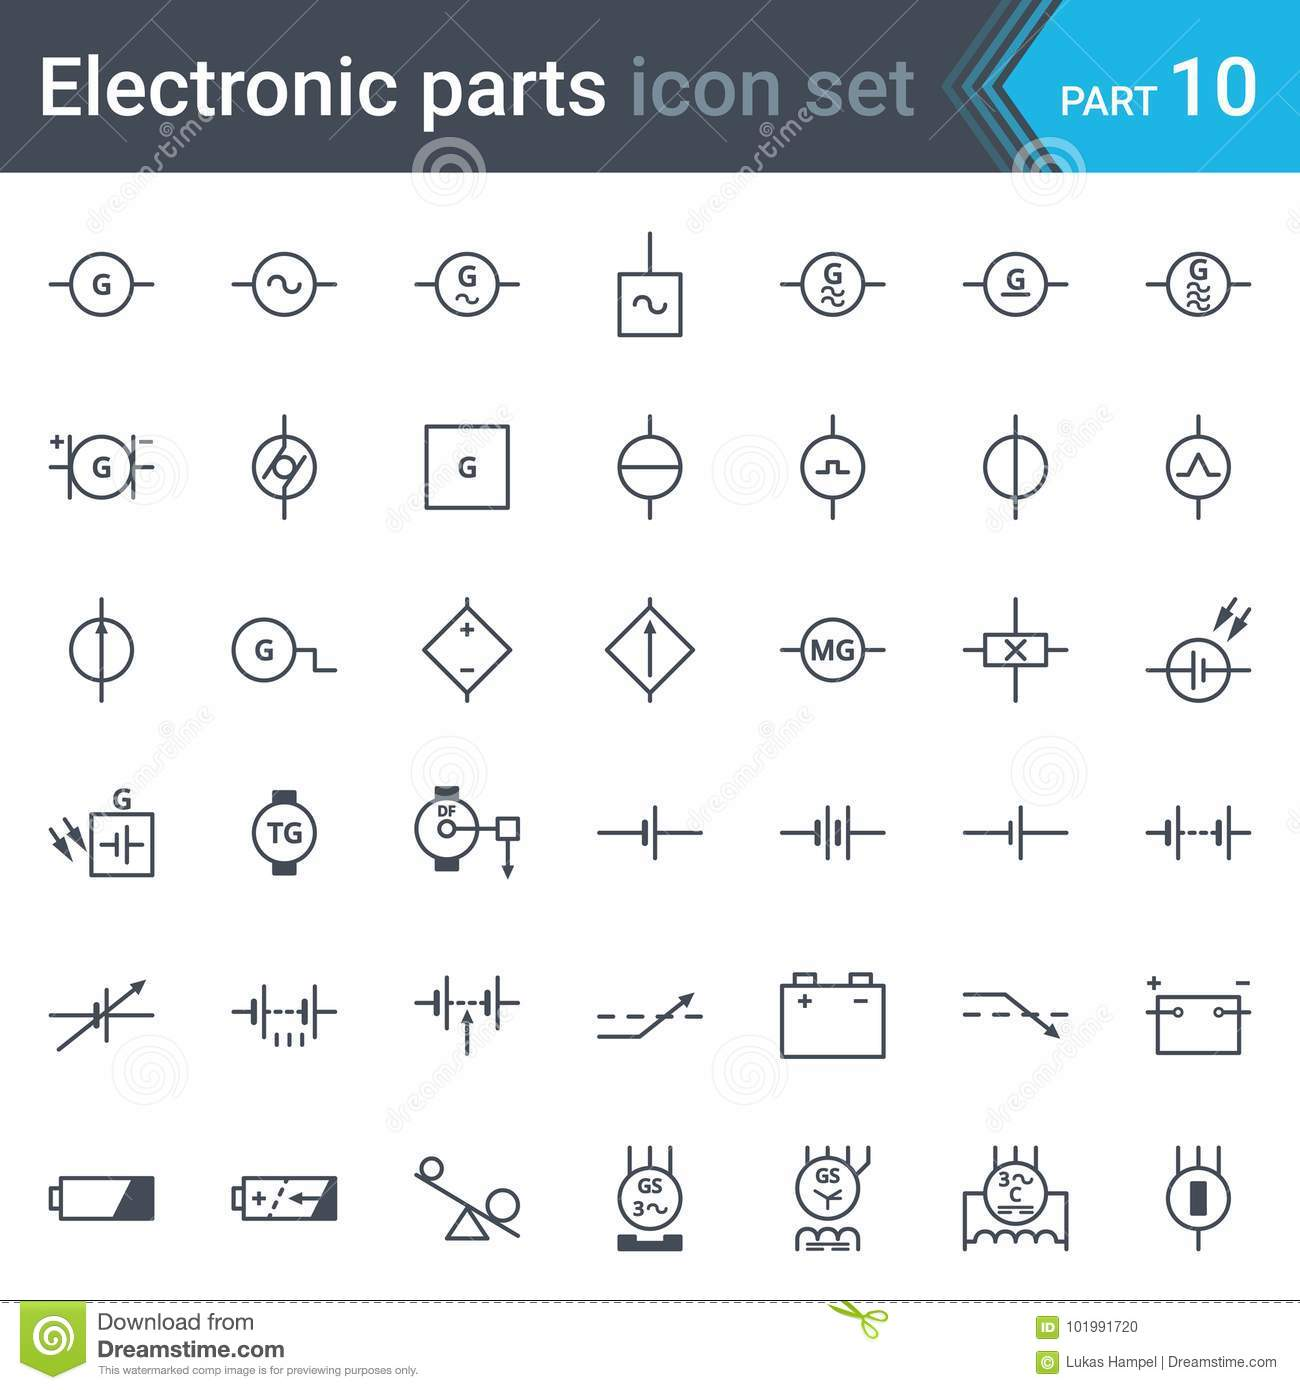 Generator Diagram Symbol Wiring Master Blogs Simpleelectricgeneratordiagram Pin Simple Electricity Electric And Electronic Circuit Symbols Set Of Rh Dreamstime Com Basic